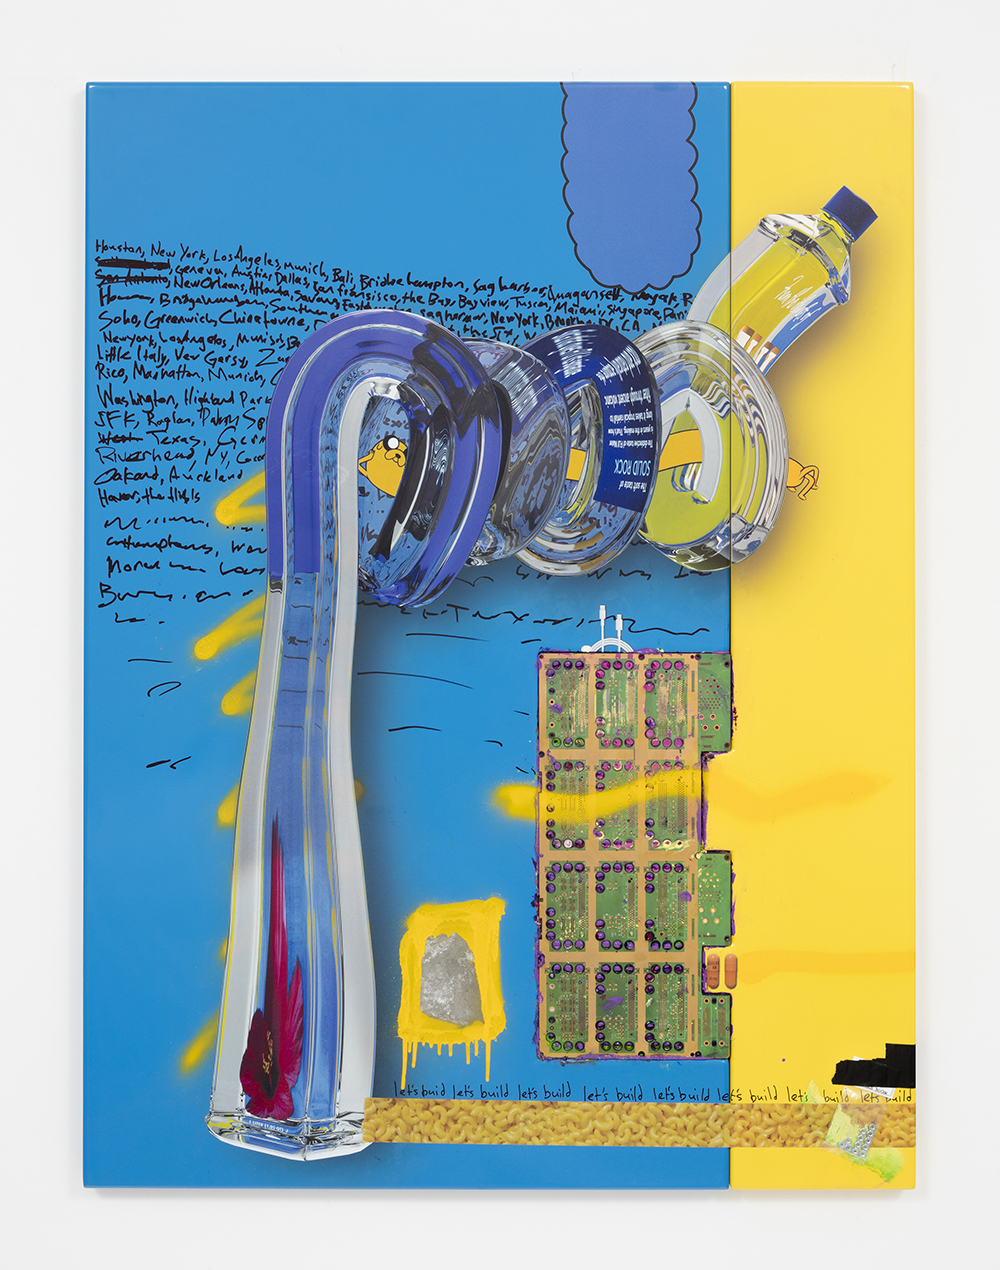 <em>let's build</em>, 2017. UV print, spray paint, duct tape, ink, circuit board, bag of nuts and oil on powder coated steel, 49 x 39 x 3 inches